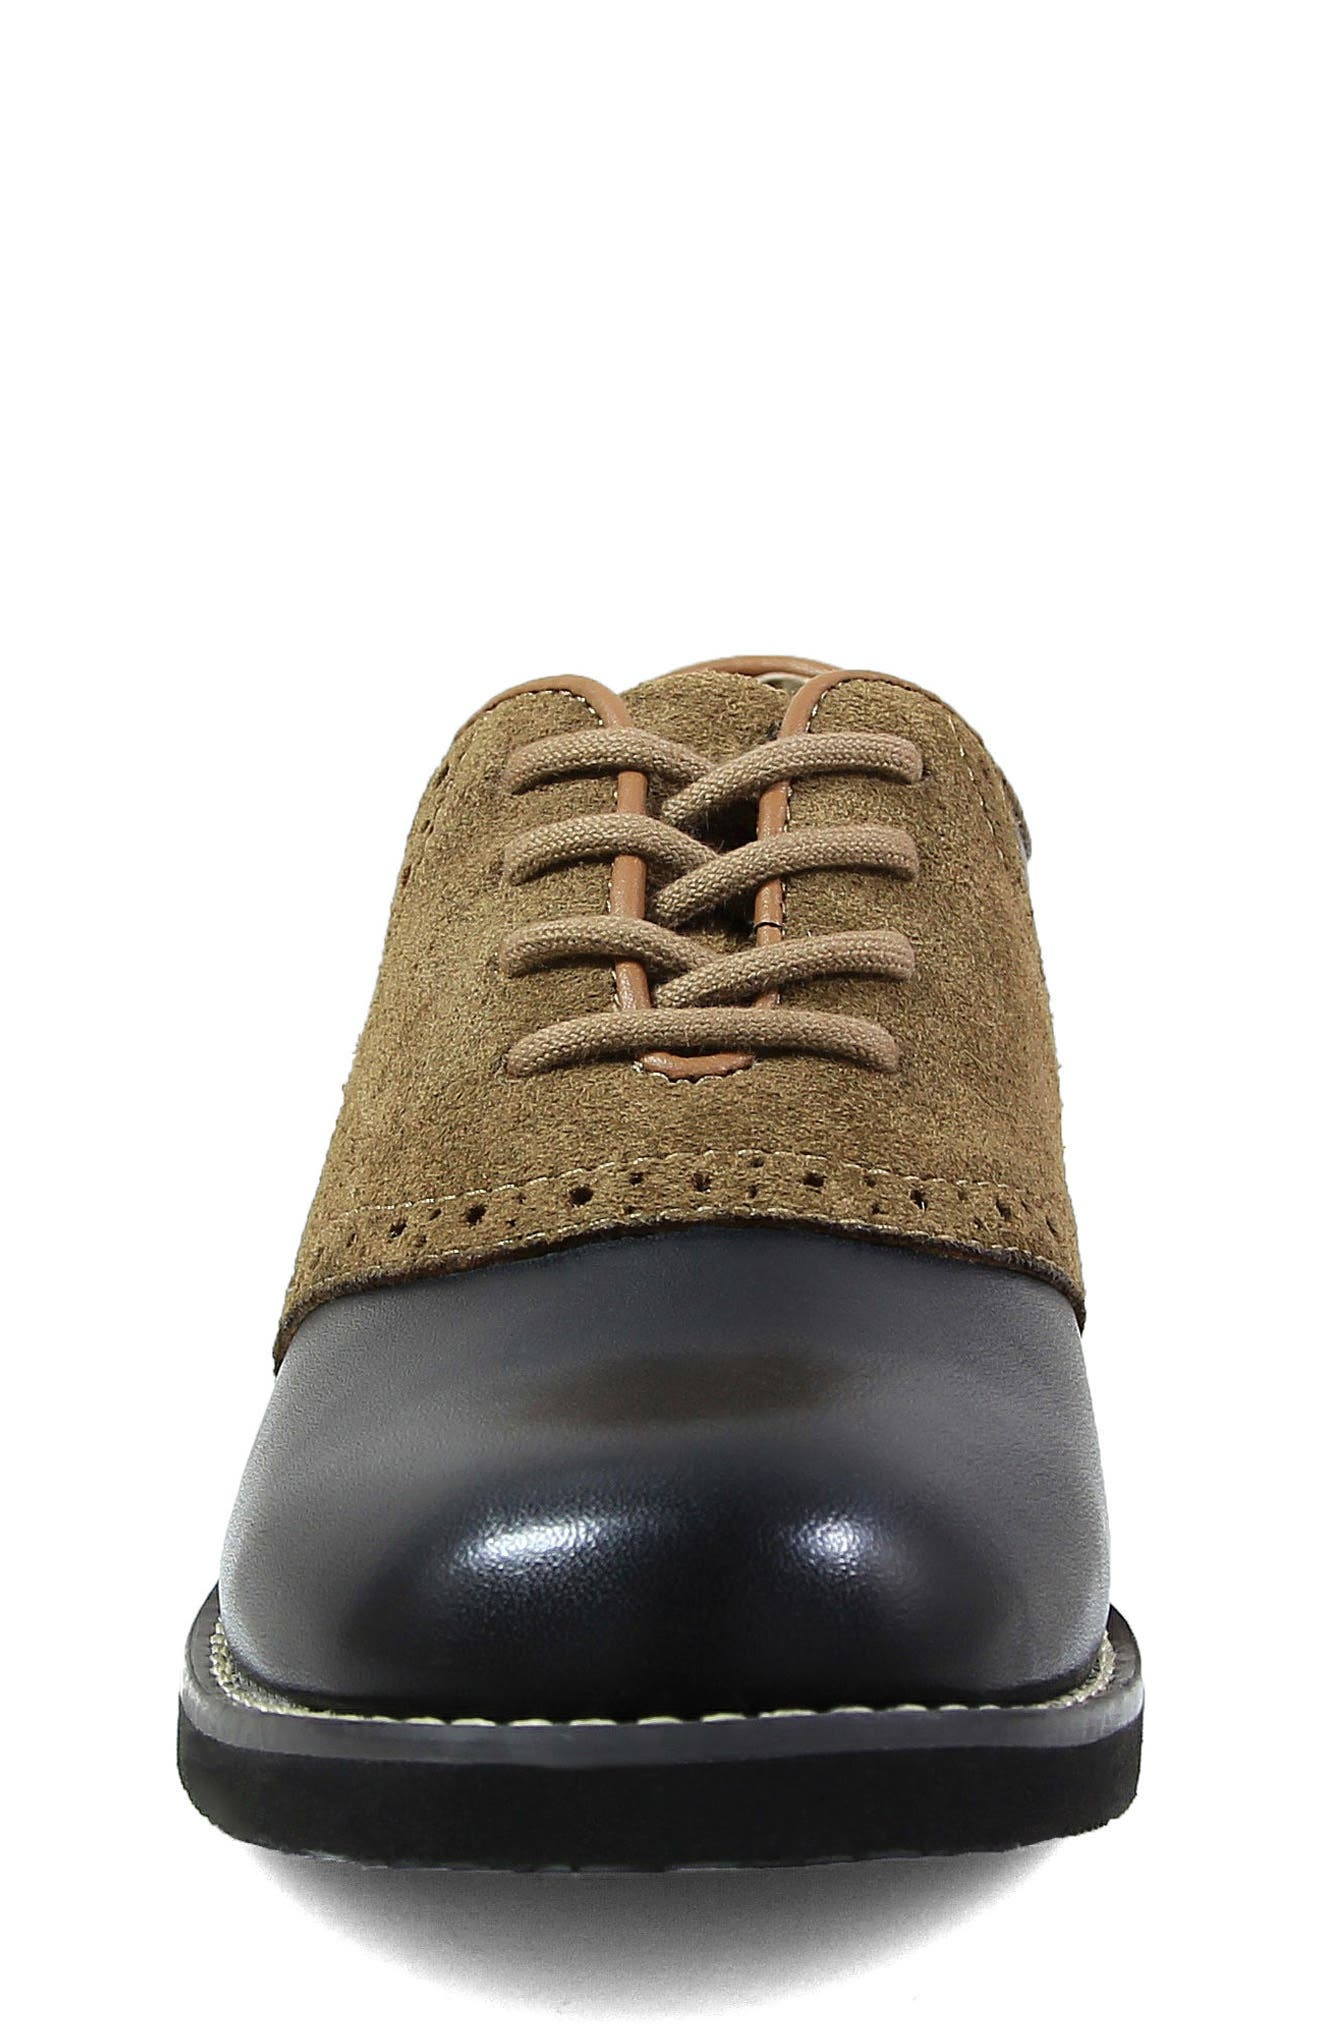 ,                             'Kennett Jr. II' Saddle Shoe,                             Alternate thumbnail 3, color,                             SMOOTH BLACK W/ MOCHA SUEDE